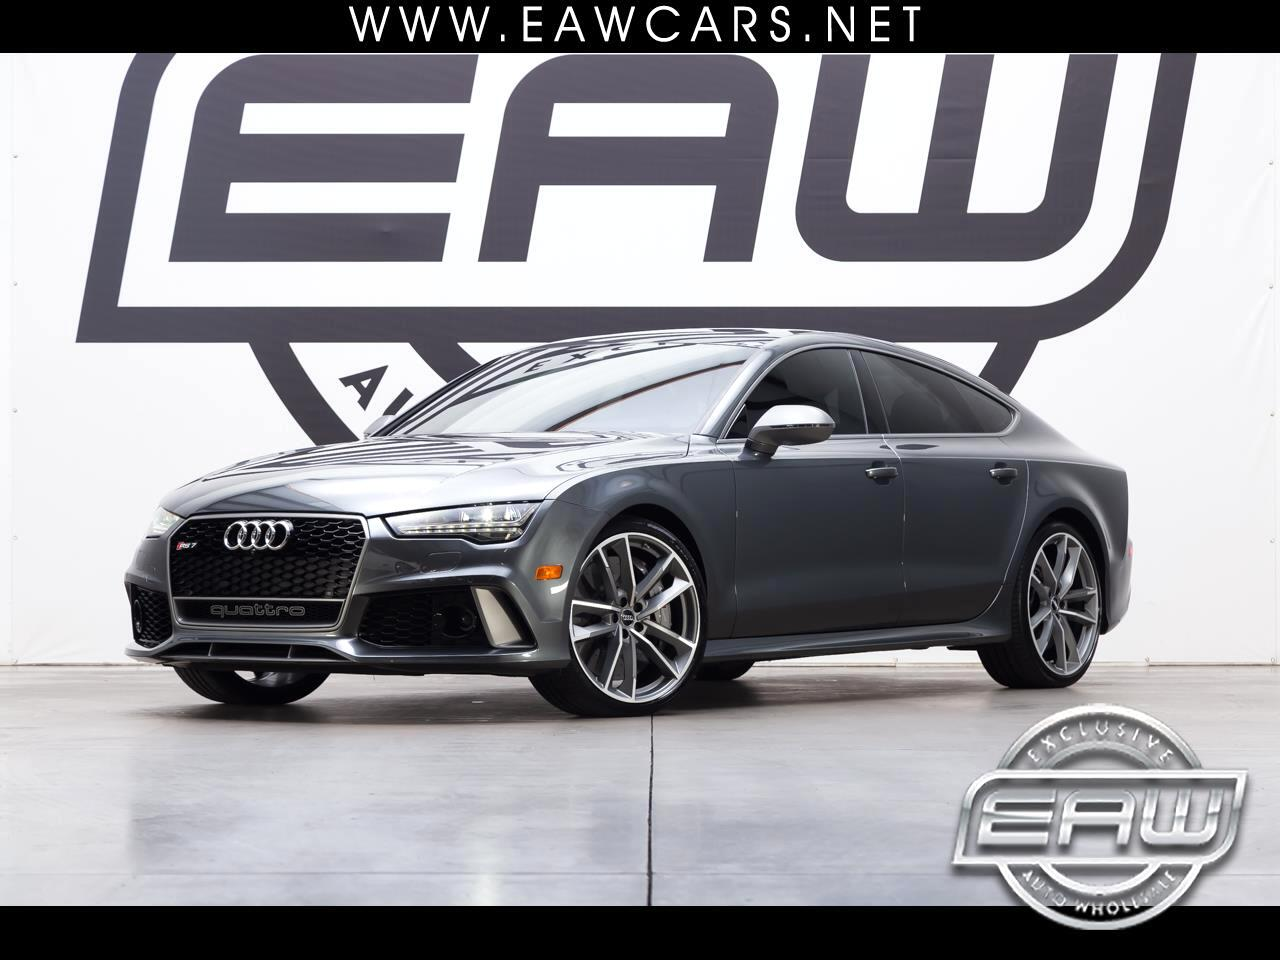 2017 Audi RS7 PERFORMANCE 4.0T QUATTRO TITANIUM EDITION *1 OF 50